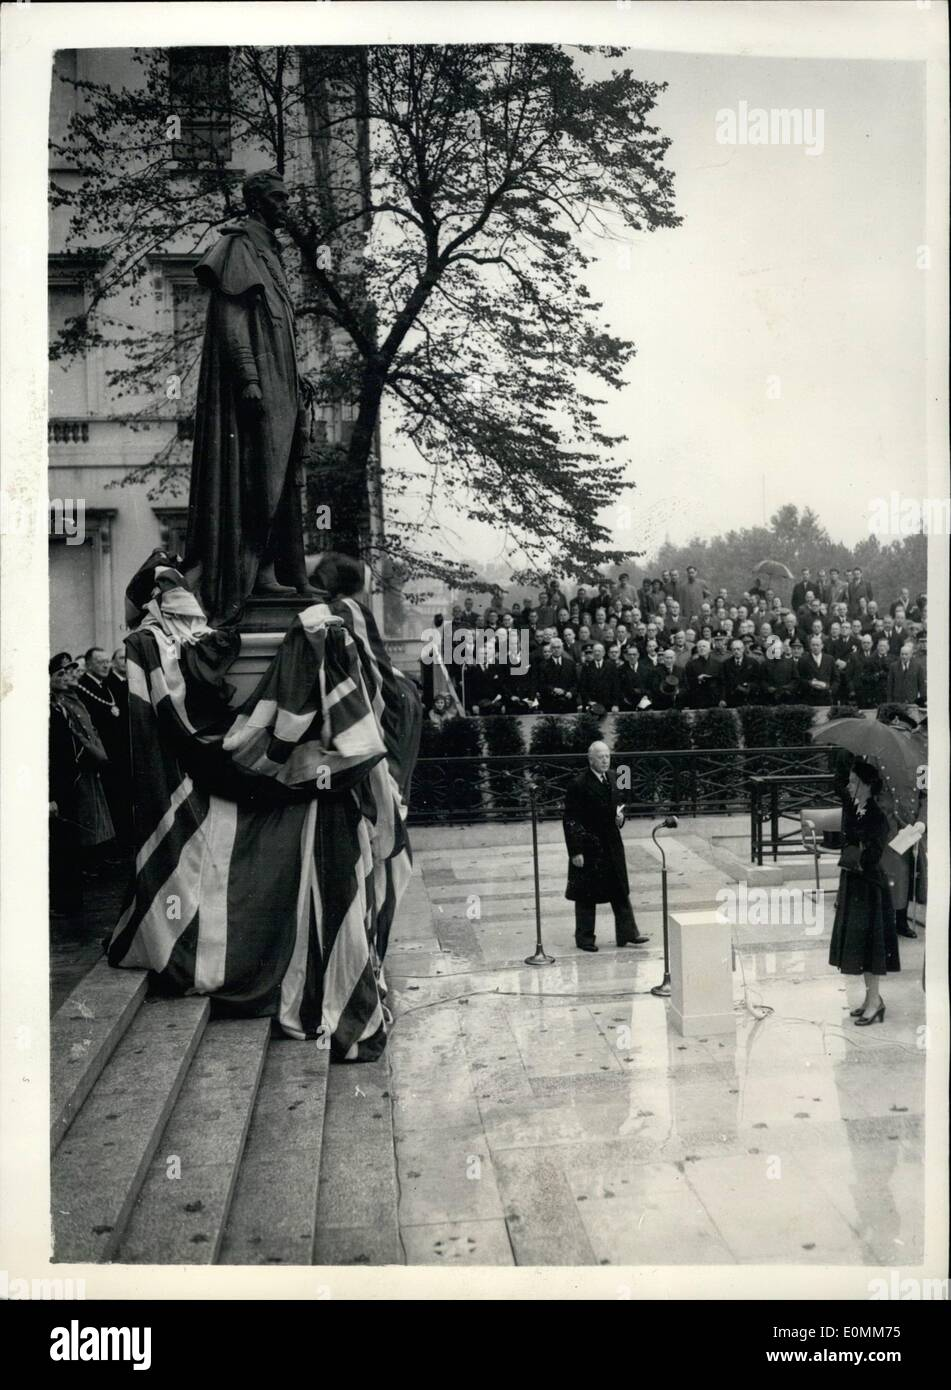 Oct. 10, 1955 - Queen unveils statue to her father - King George VI. Ceremony in Carlton Gardens.: H.M. The Queen this morning performed the ceremony of unveiling the statue to her father King George VI - in Carlton Gardens. The ceremony was attended by other members of the Royal family including the Queen Mother; Princess Margaret - Duke of Edinburgh; Duke and Duchess of Gloucester; duchess and Princess Margaret of Kent. Photo shows the scene as the Queen performs the ceremony in Carlton gardens this morning. Standing behind can be seen the Archbishop of Canterbury - and other officials. Stock Photo